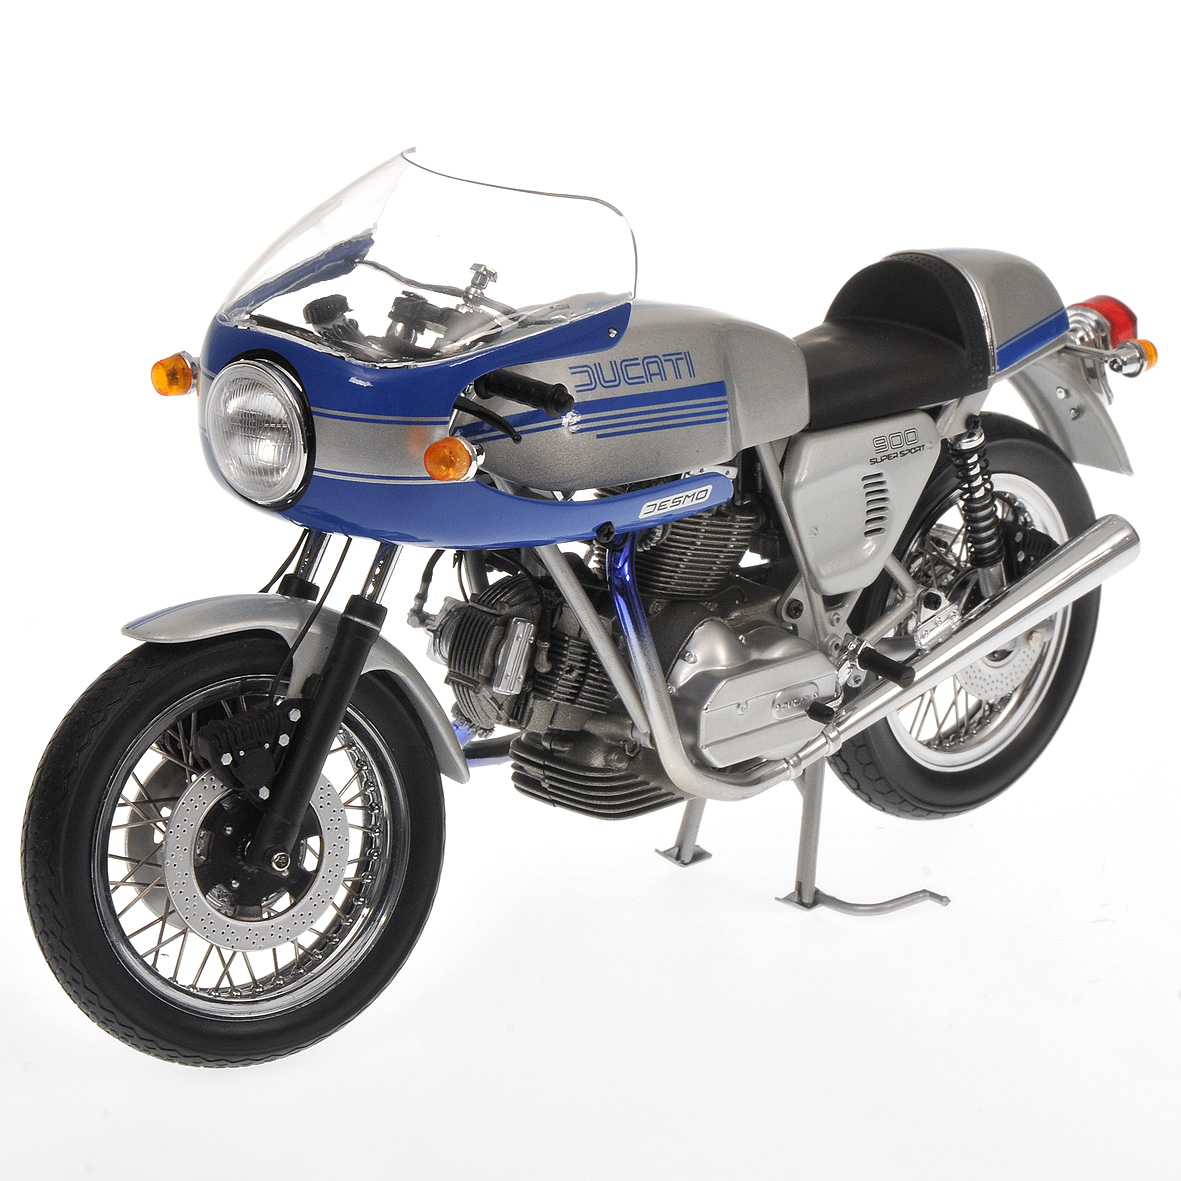 Ducati 900 SS 1978 wallpapers #10472